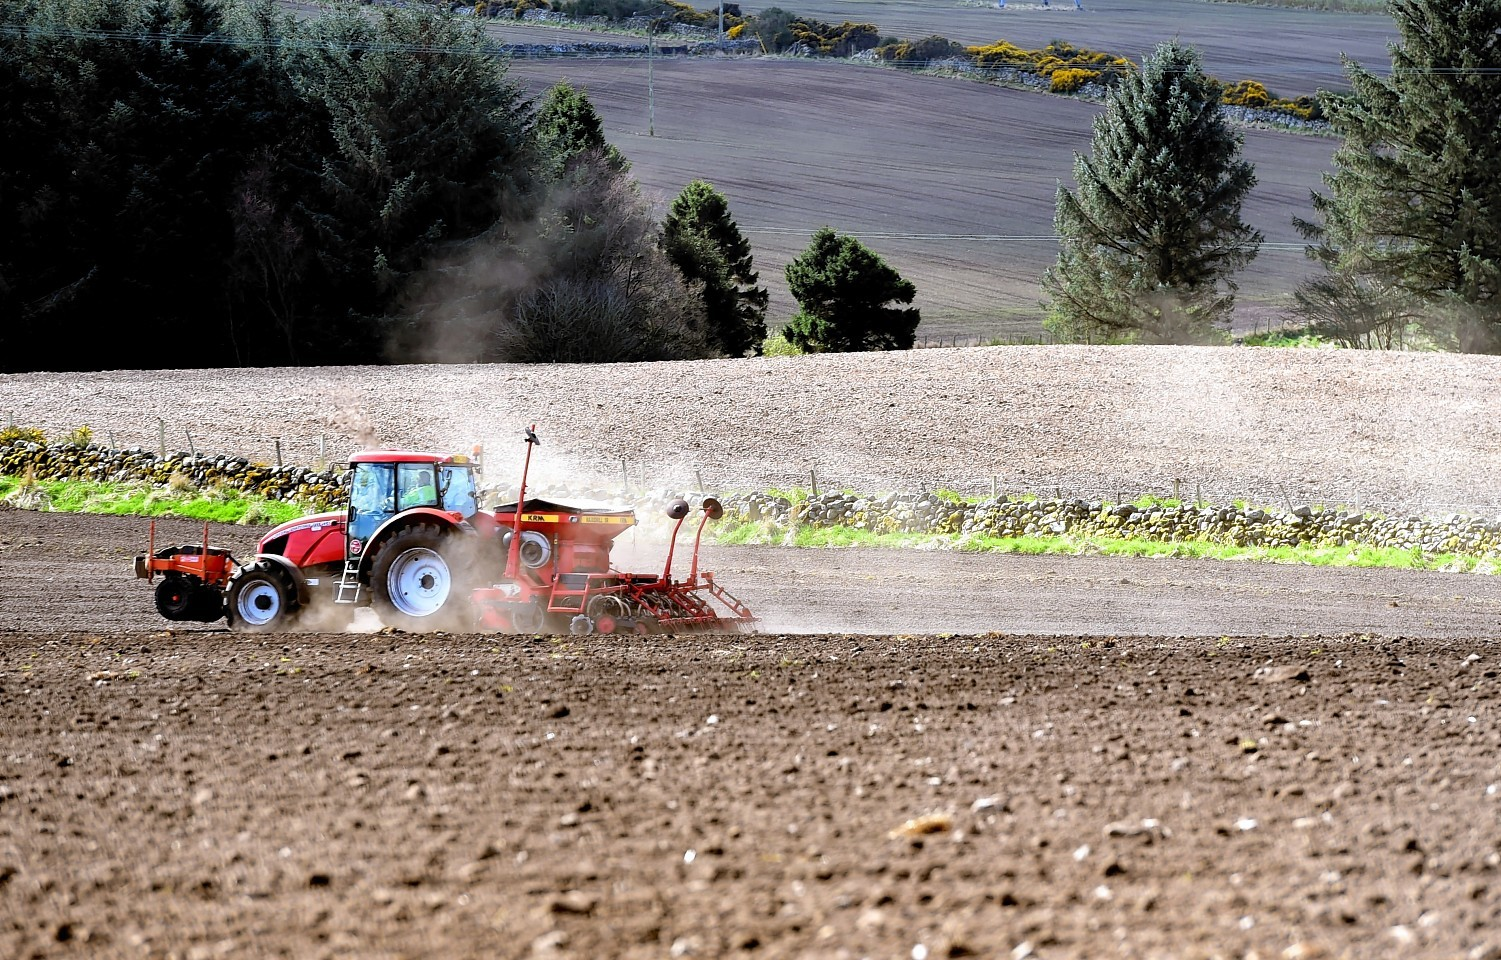 Farmers have sown a similar amount of barley to last year.